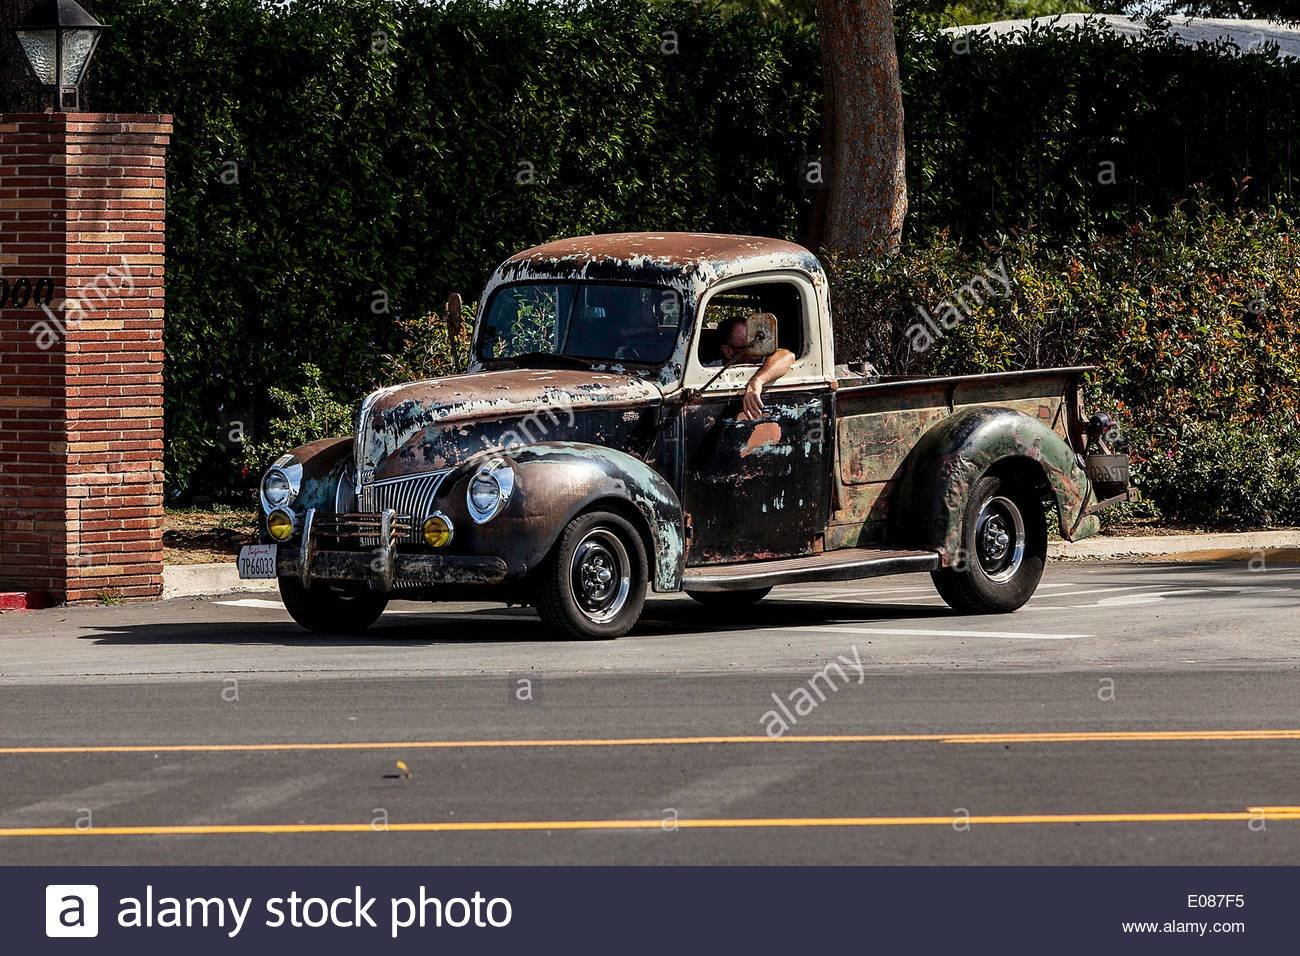 New A 1940 Ford Truck Stock Photo 69023001 Alamy On This Month Original 1024 x 768